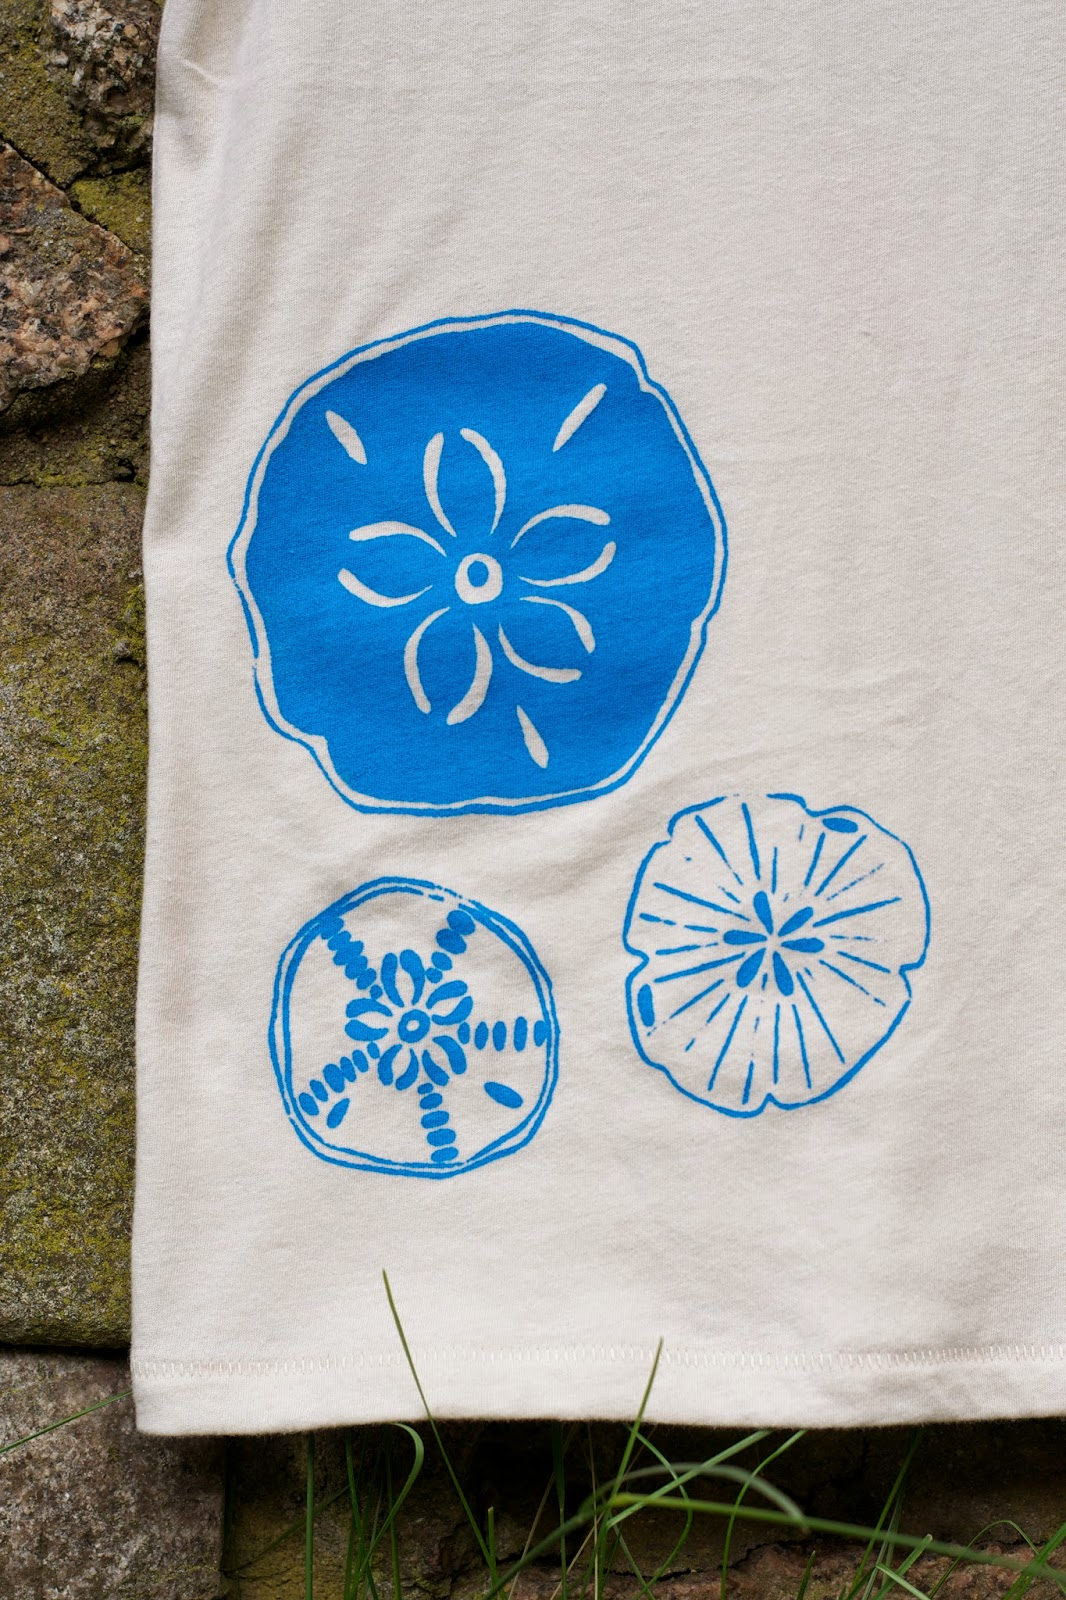 Sand dollar design in blue on the new natural organic cotton tee.